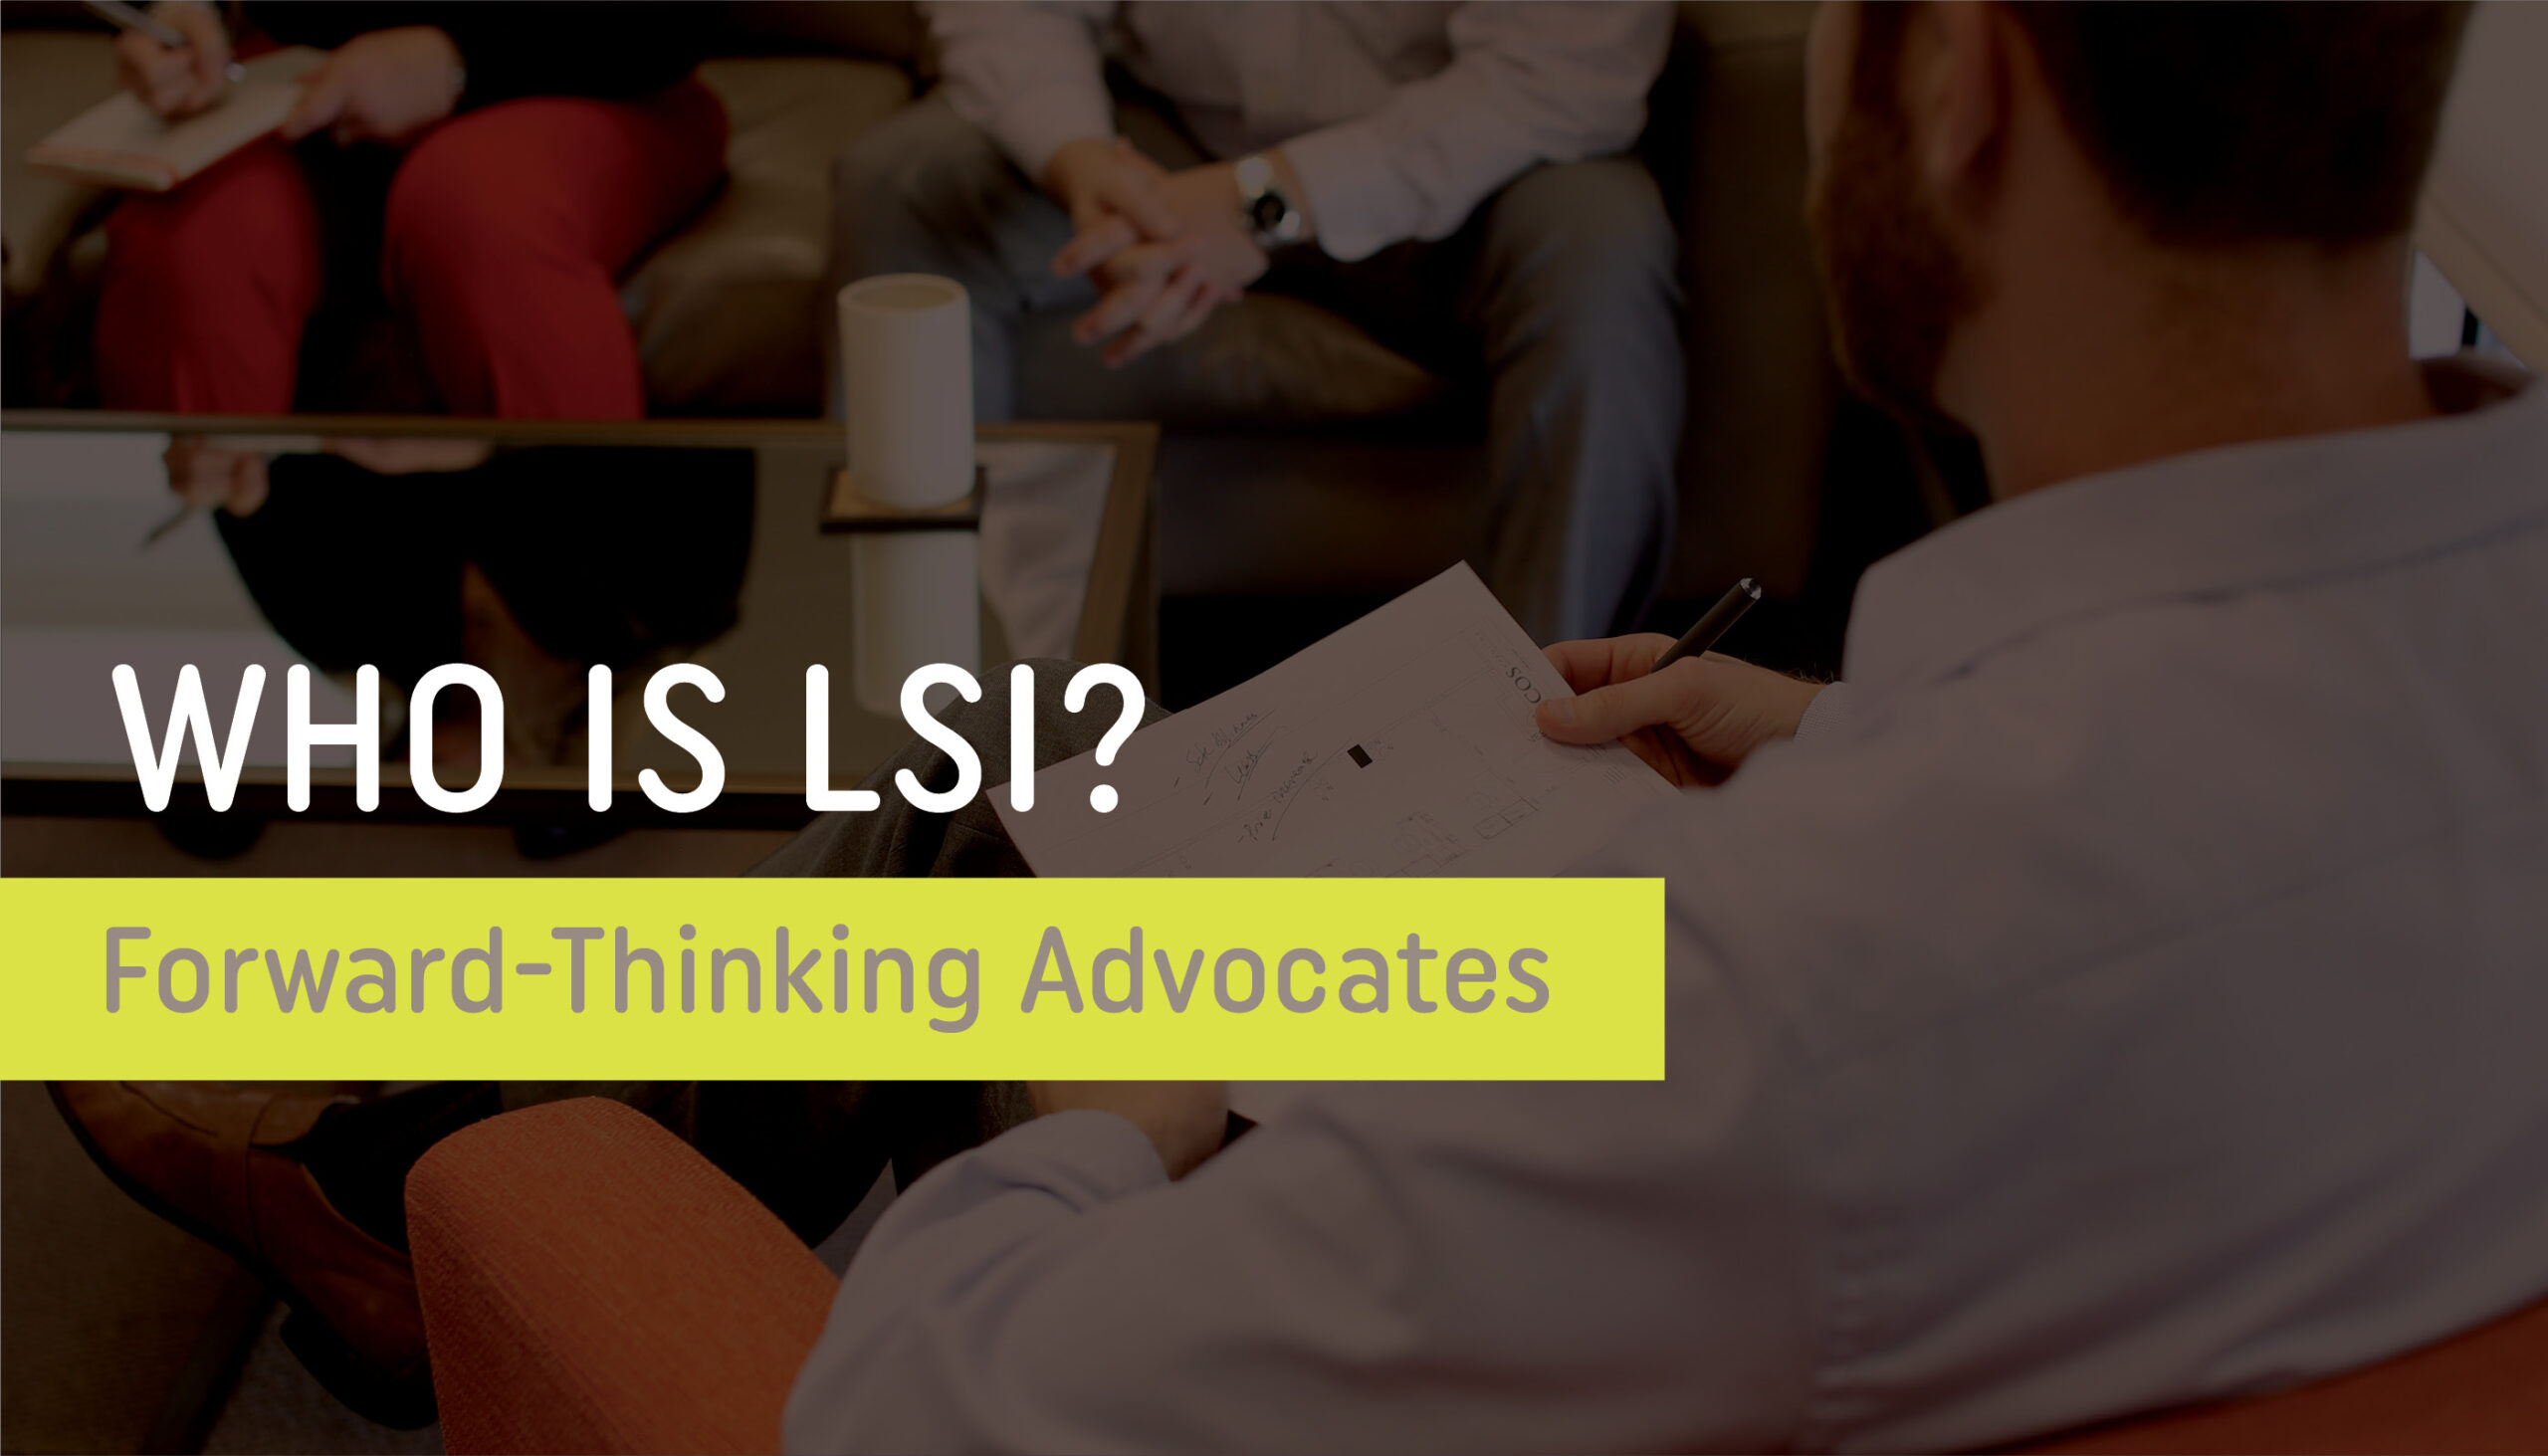 Who is LSI? – Forward-Thinking Advocates